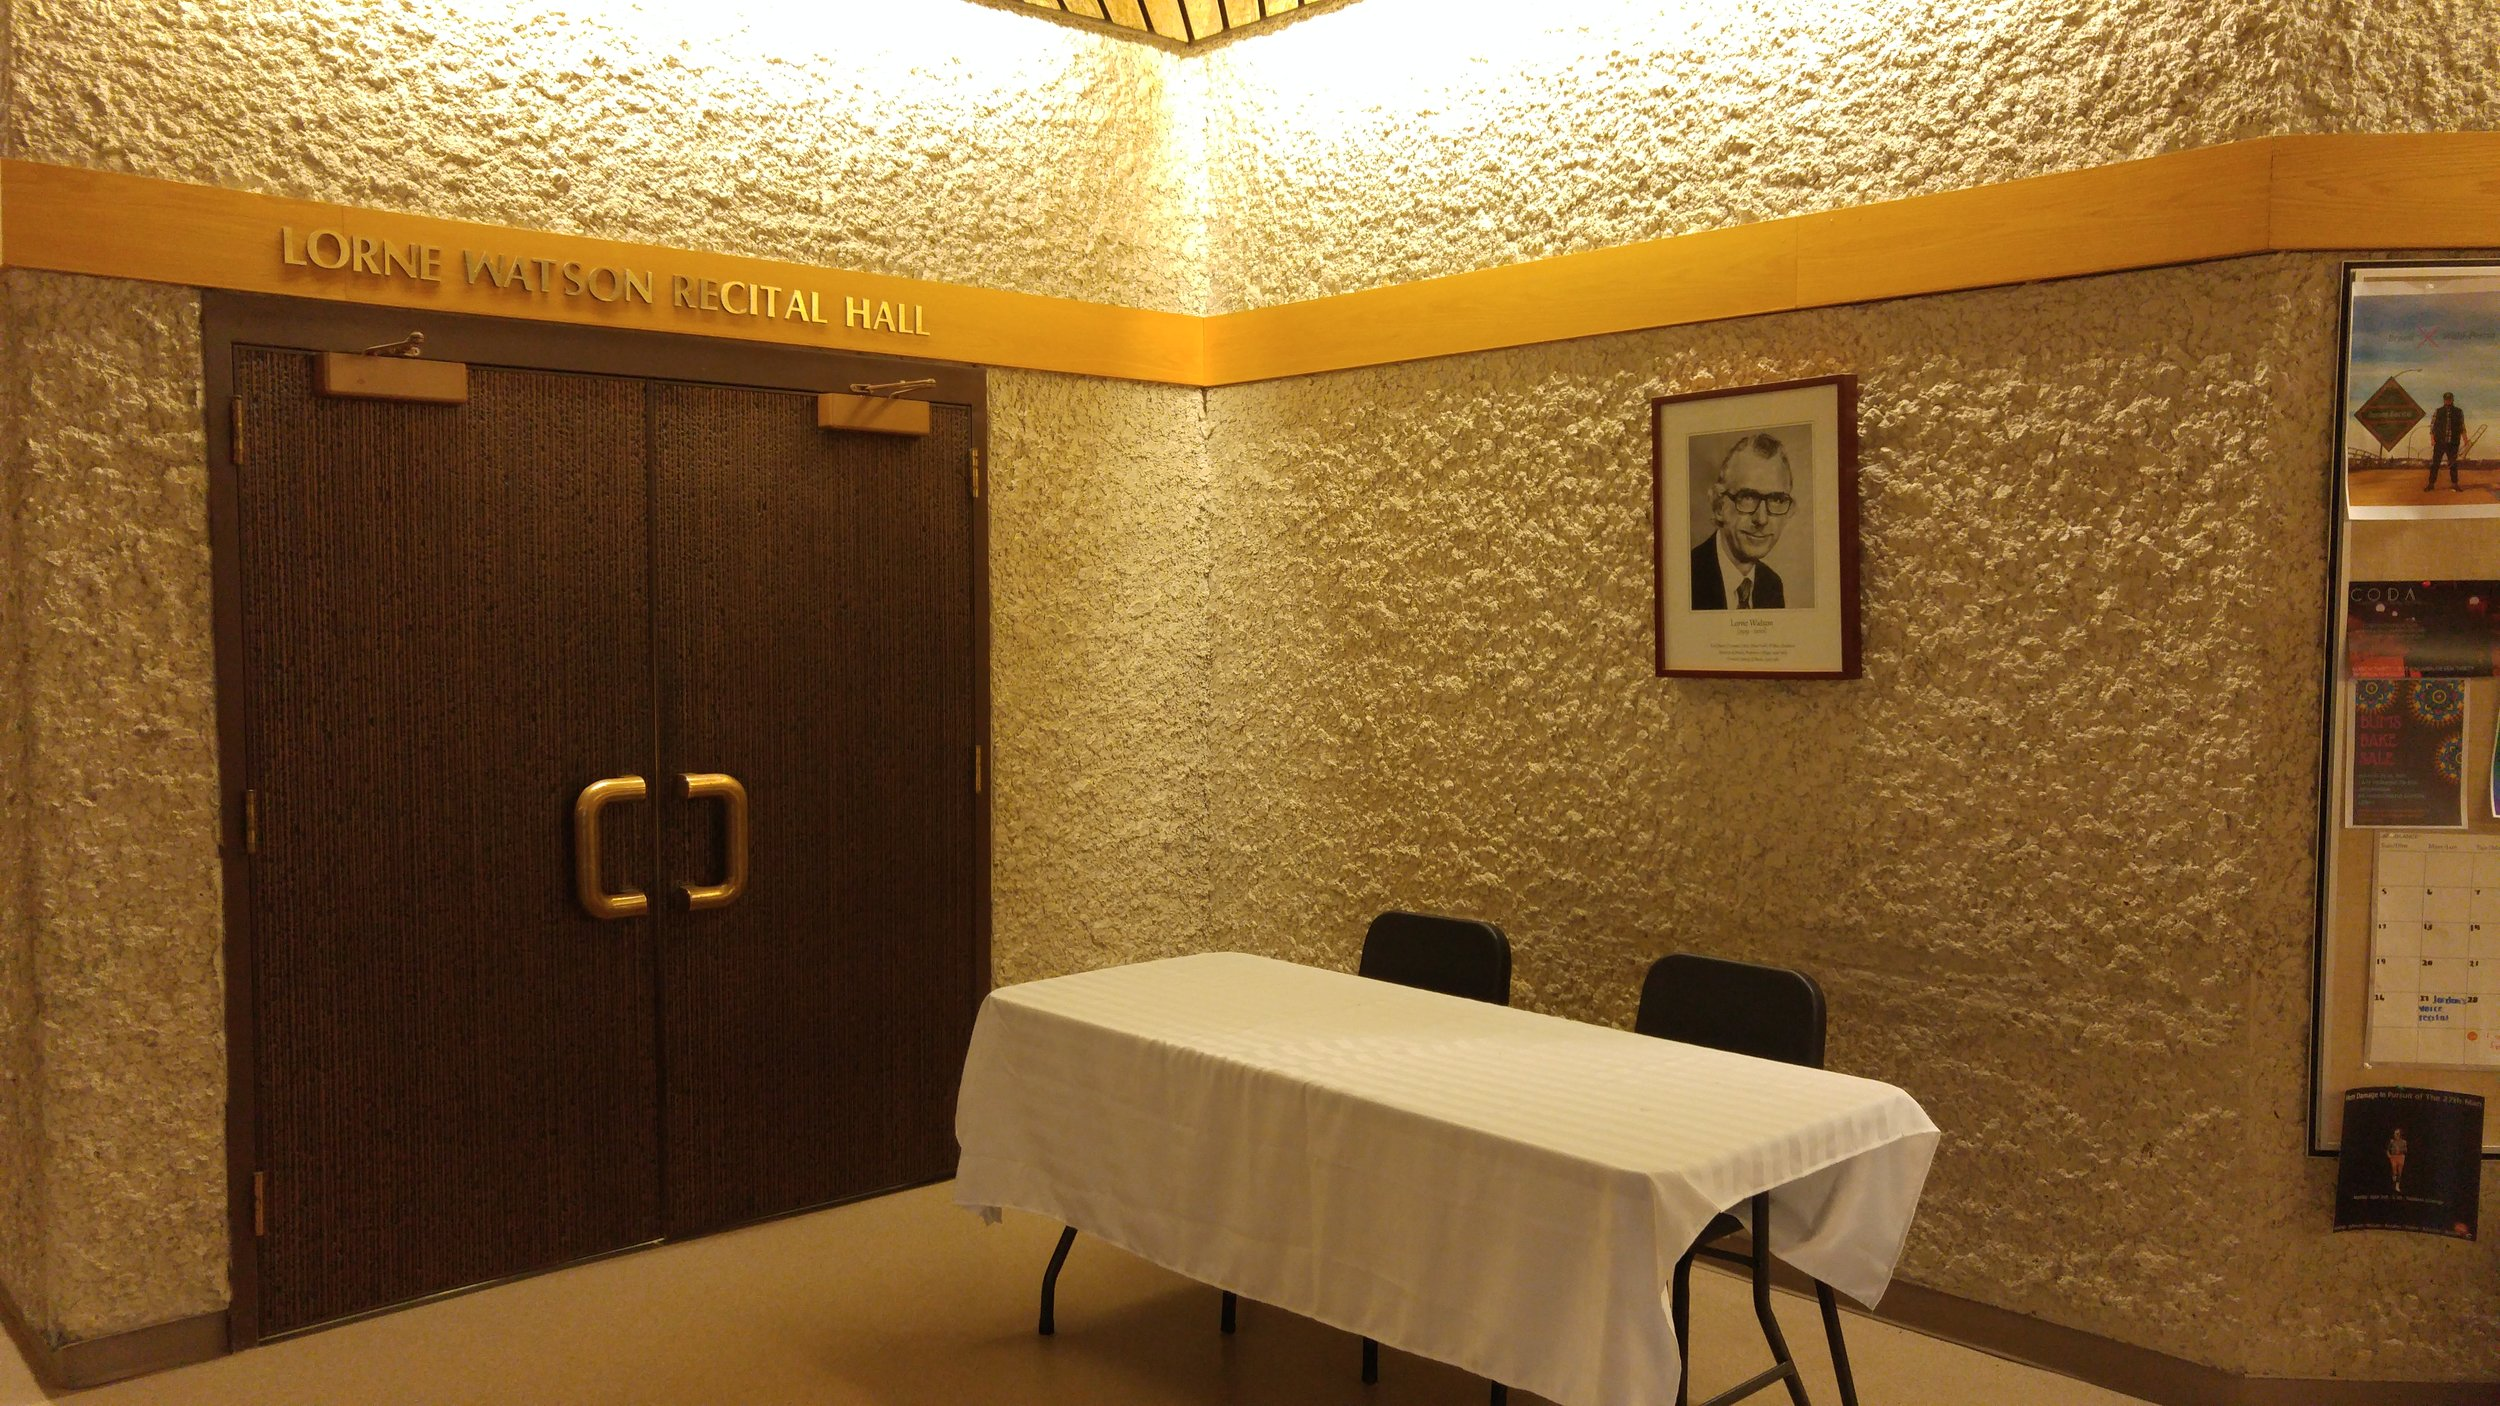 Entrance to the Lorne Watson Recital Hall. (Credit: Logan Praznik/The Quill)